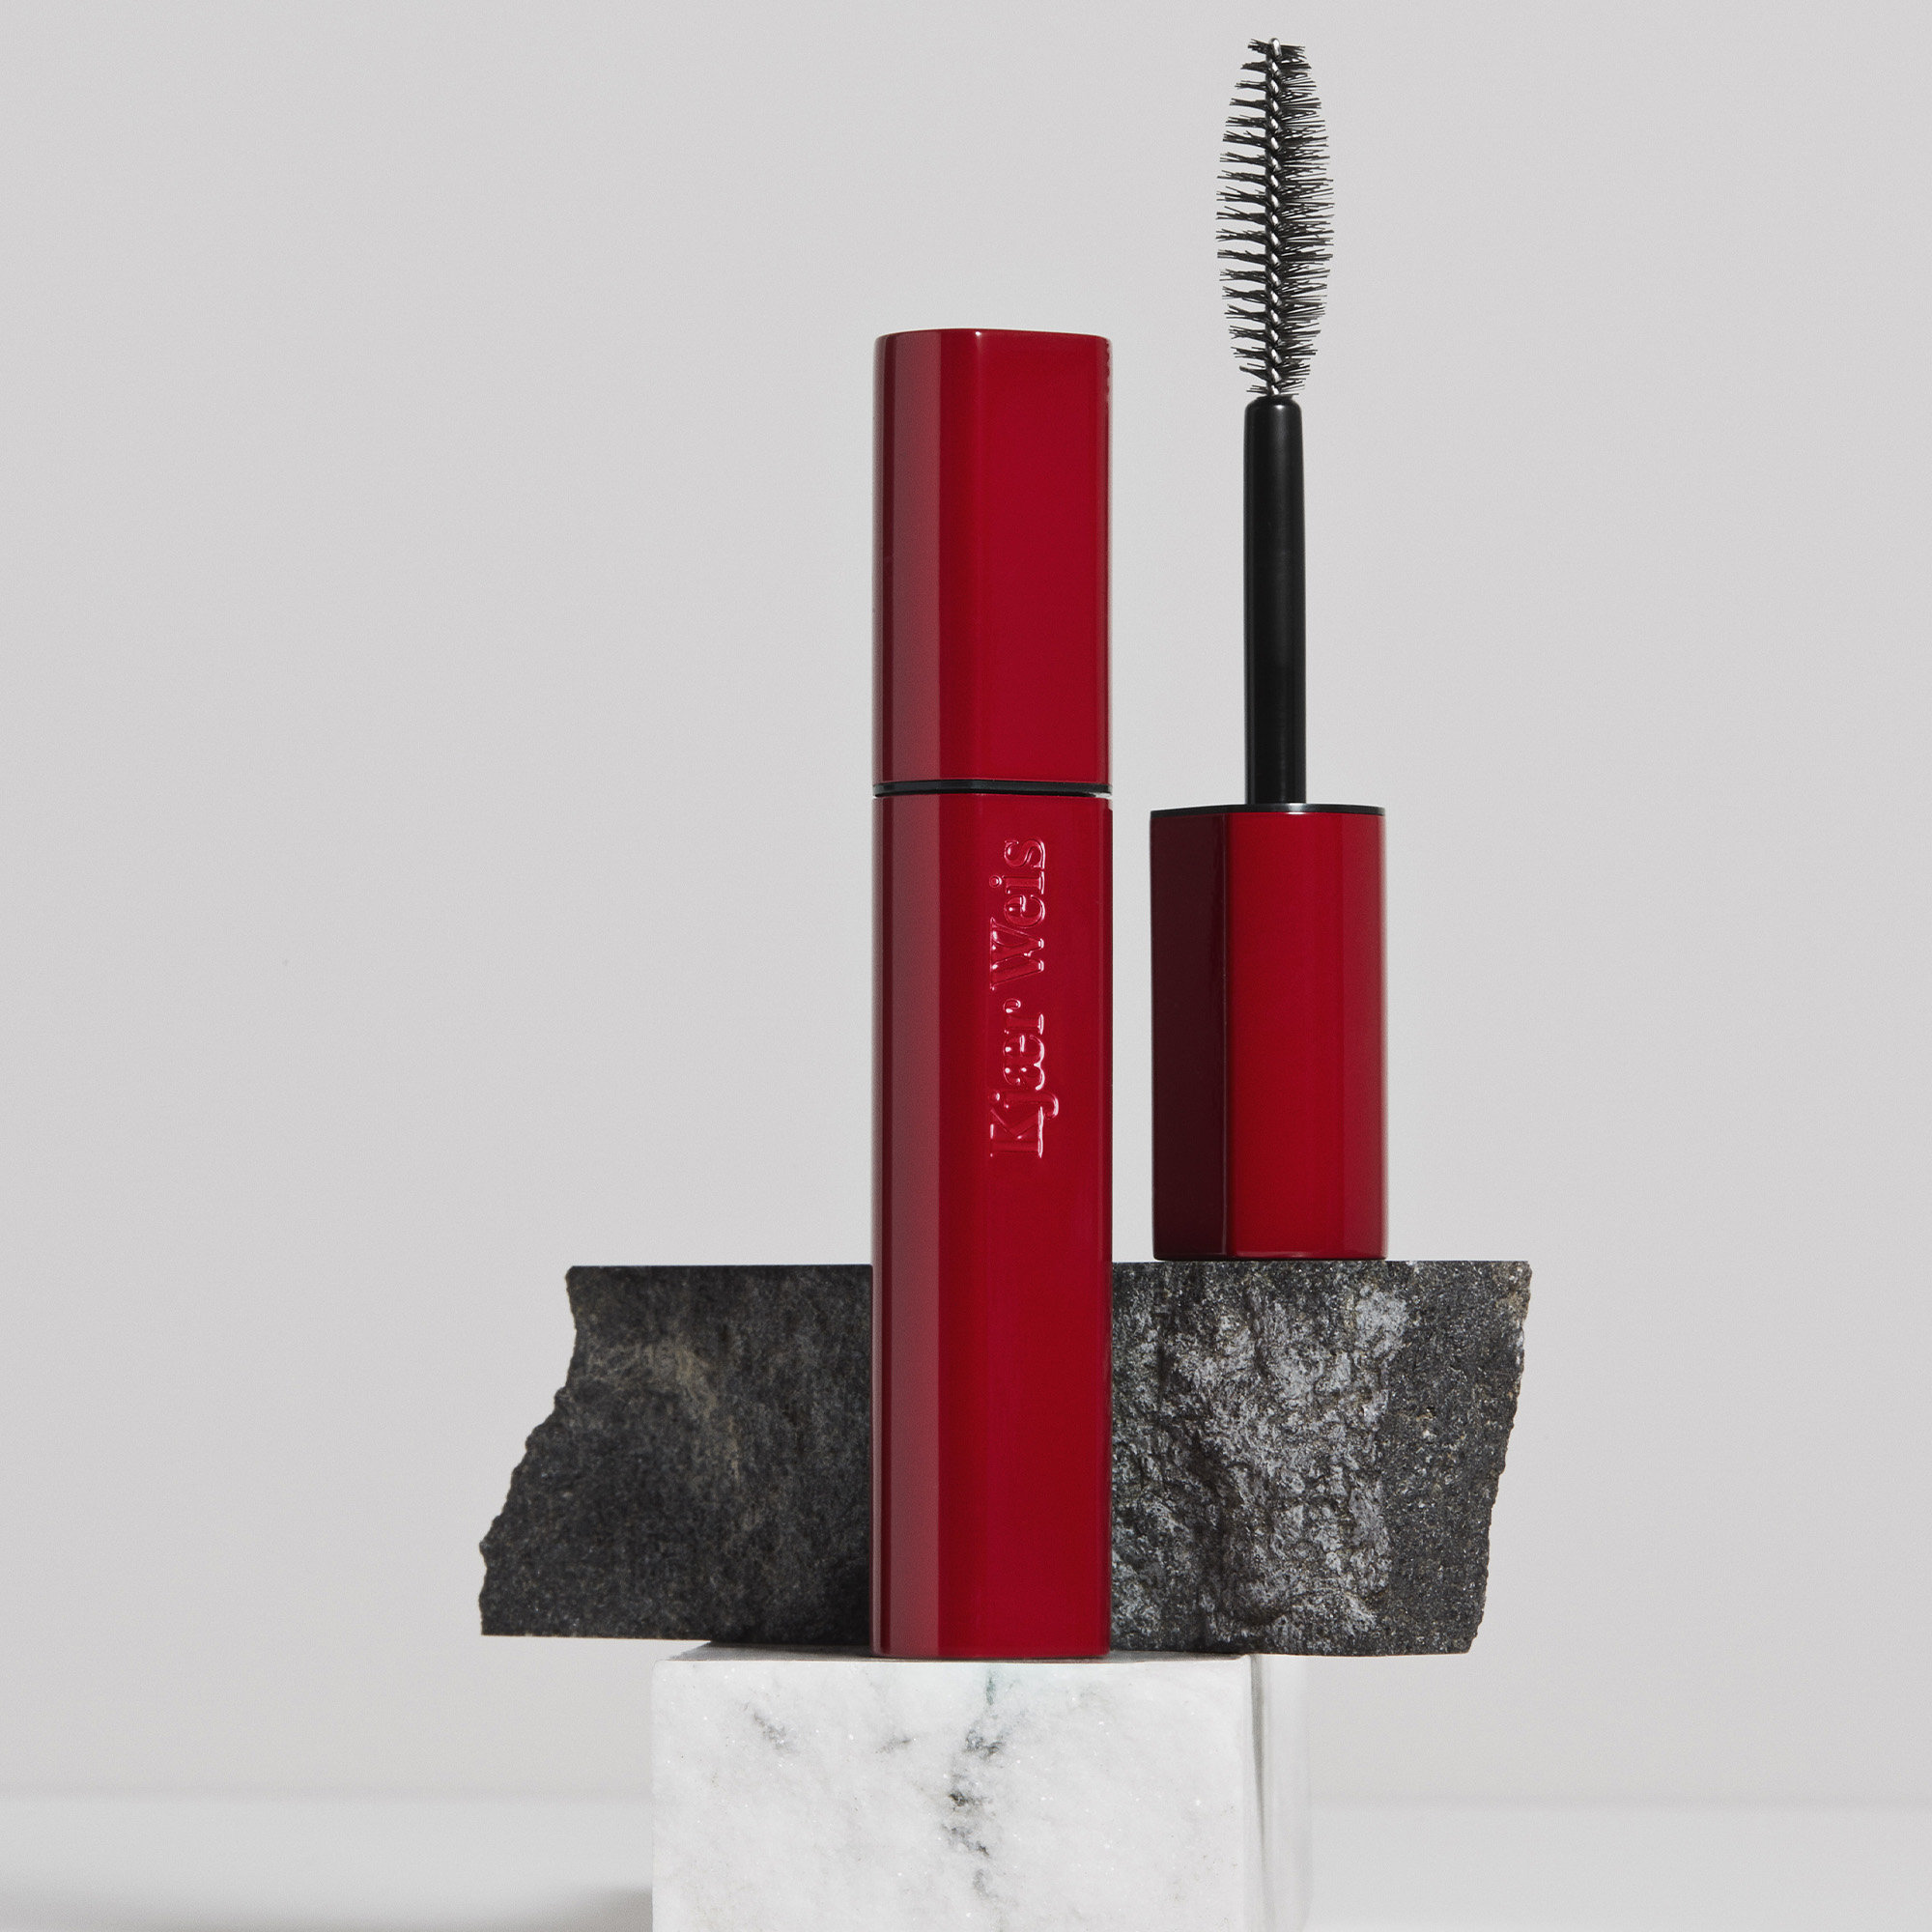 Alternate product image for Im-Possible Mascara shown with the description.